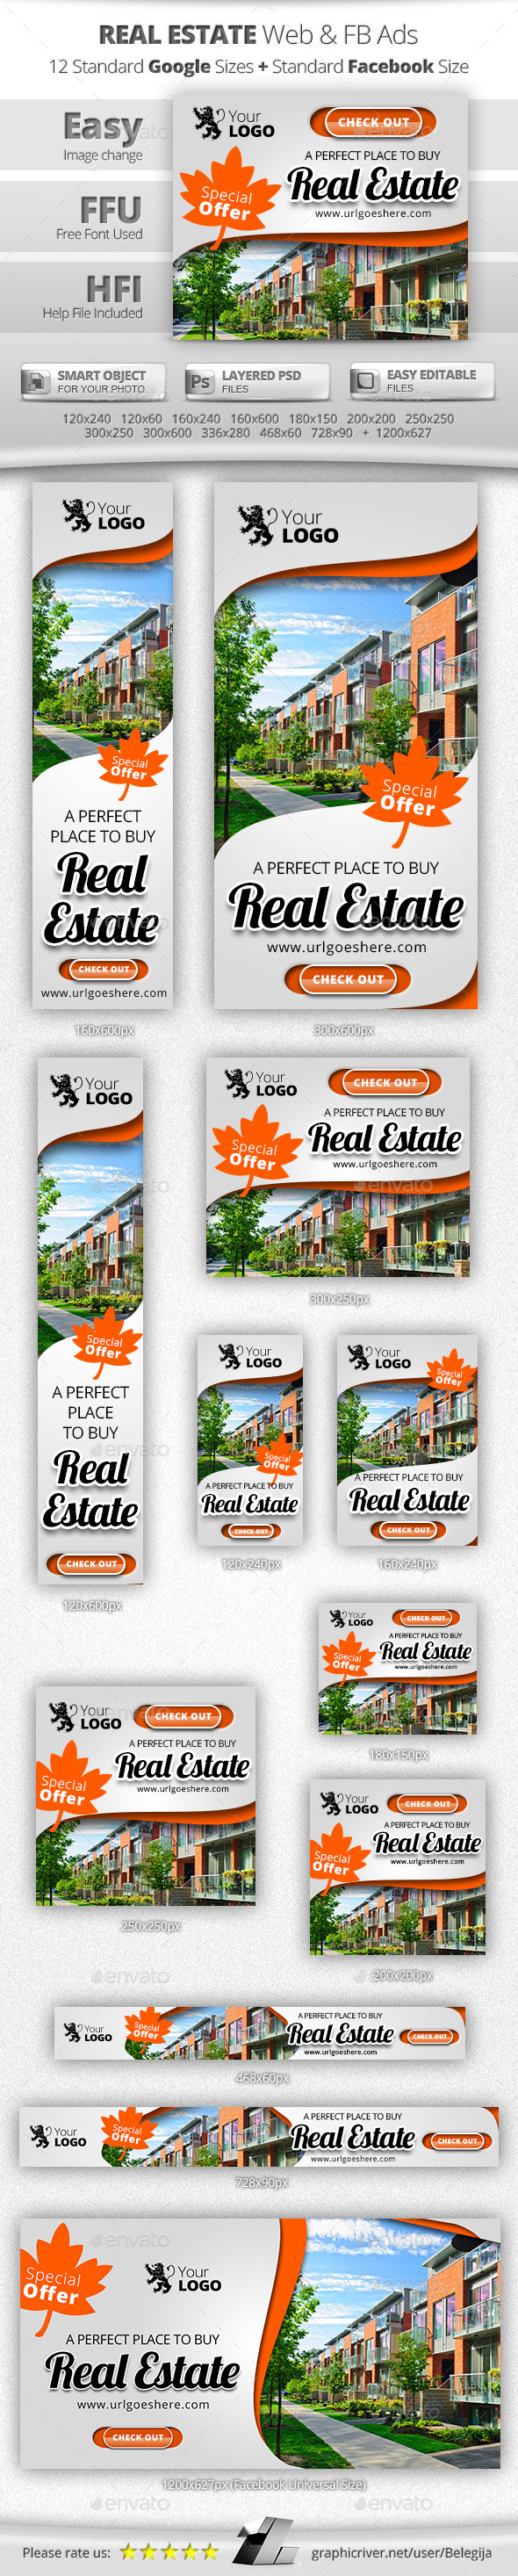 real estate web fb ads template psd banner webbanner design download